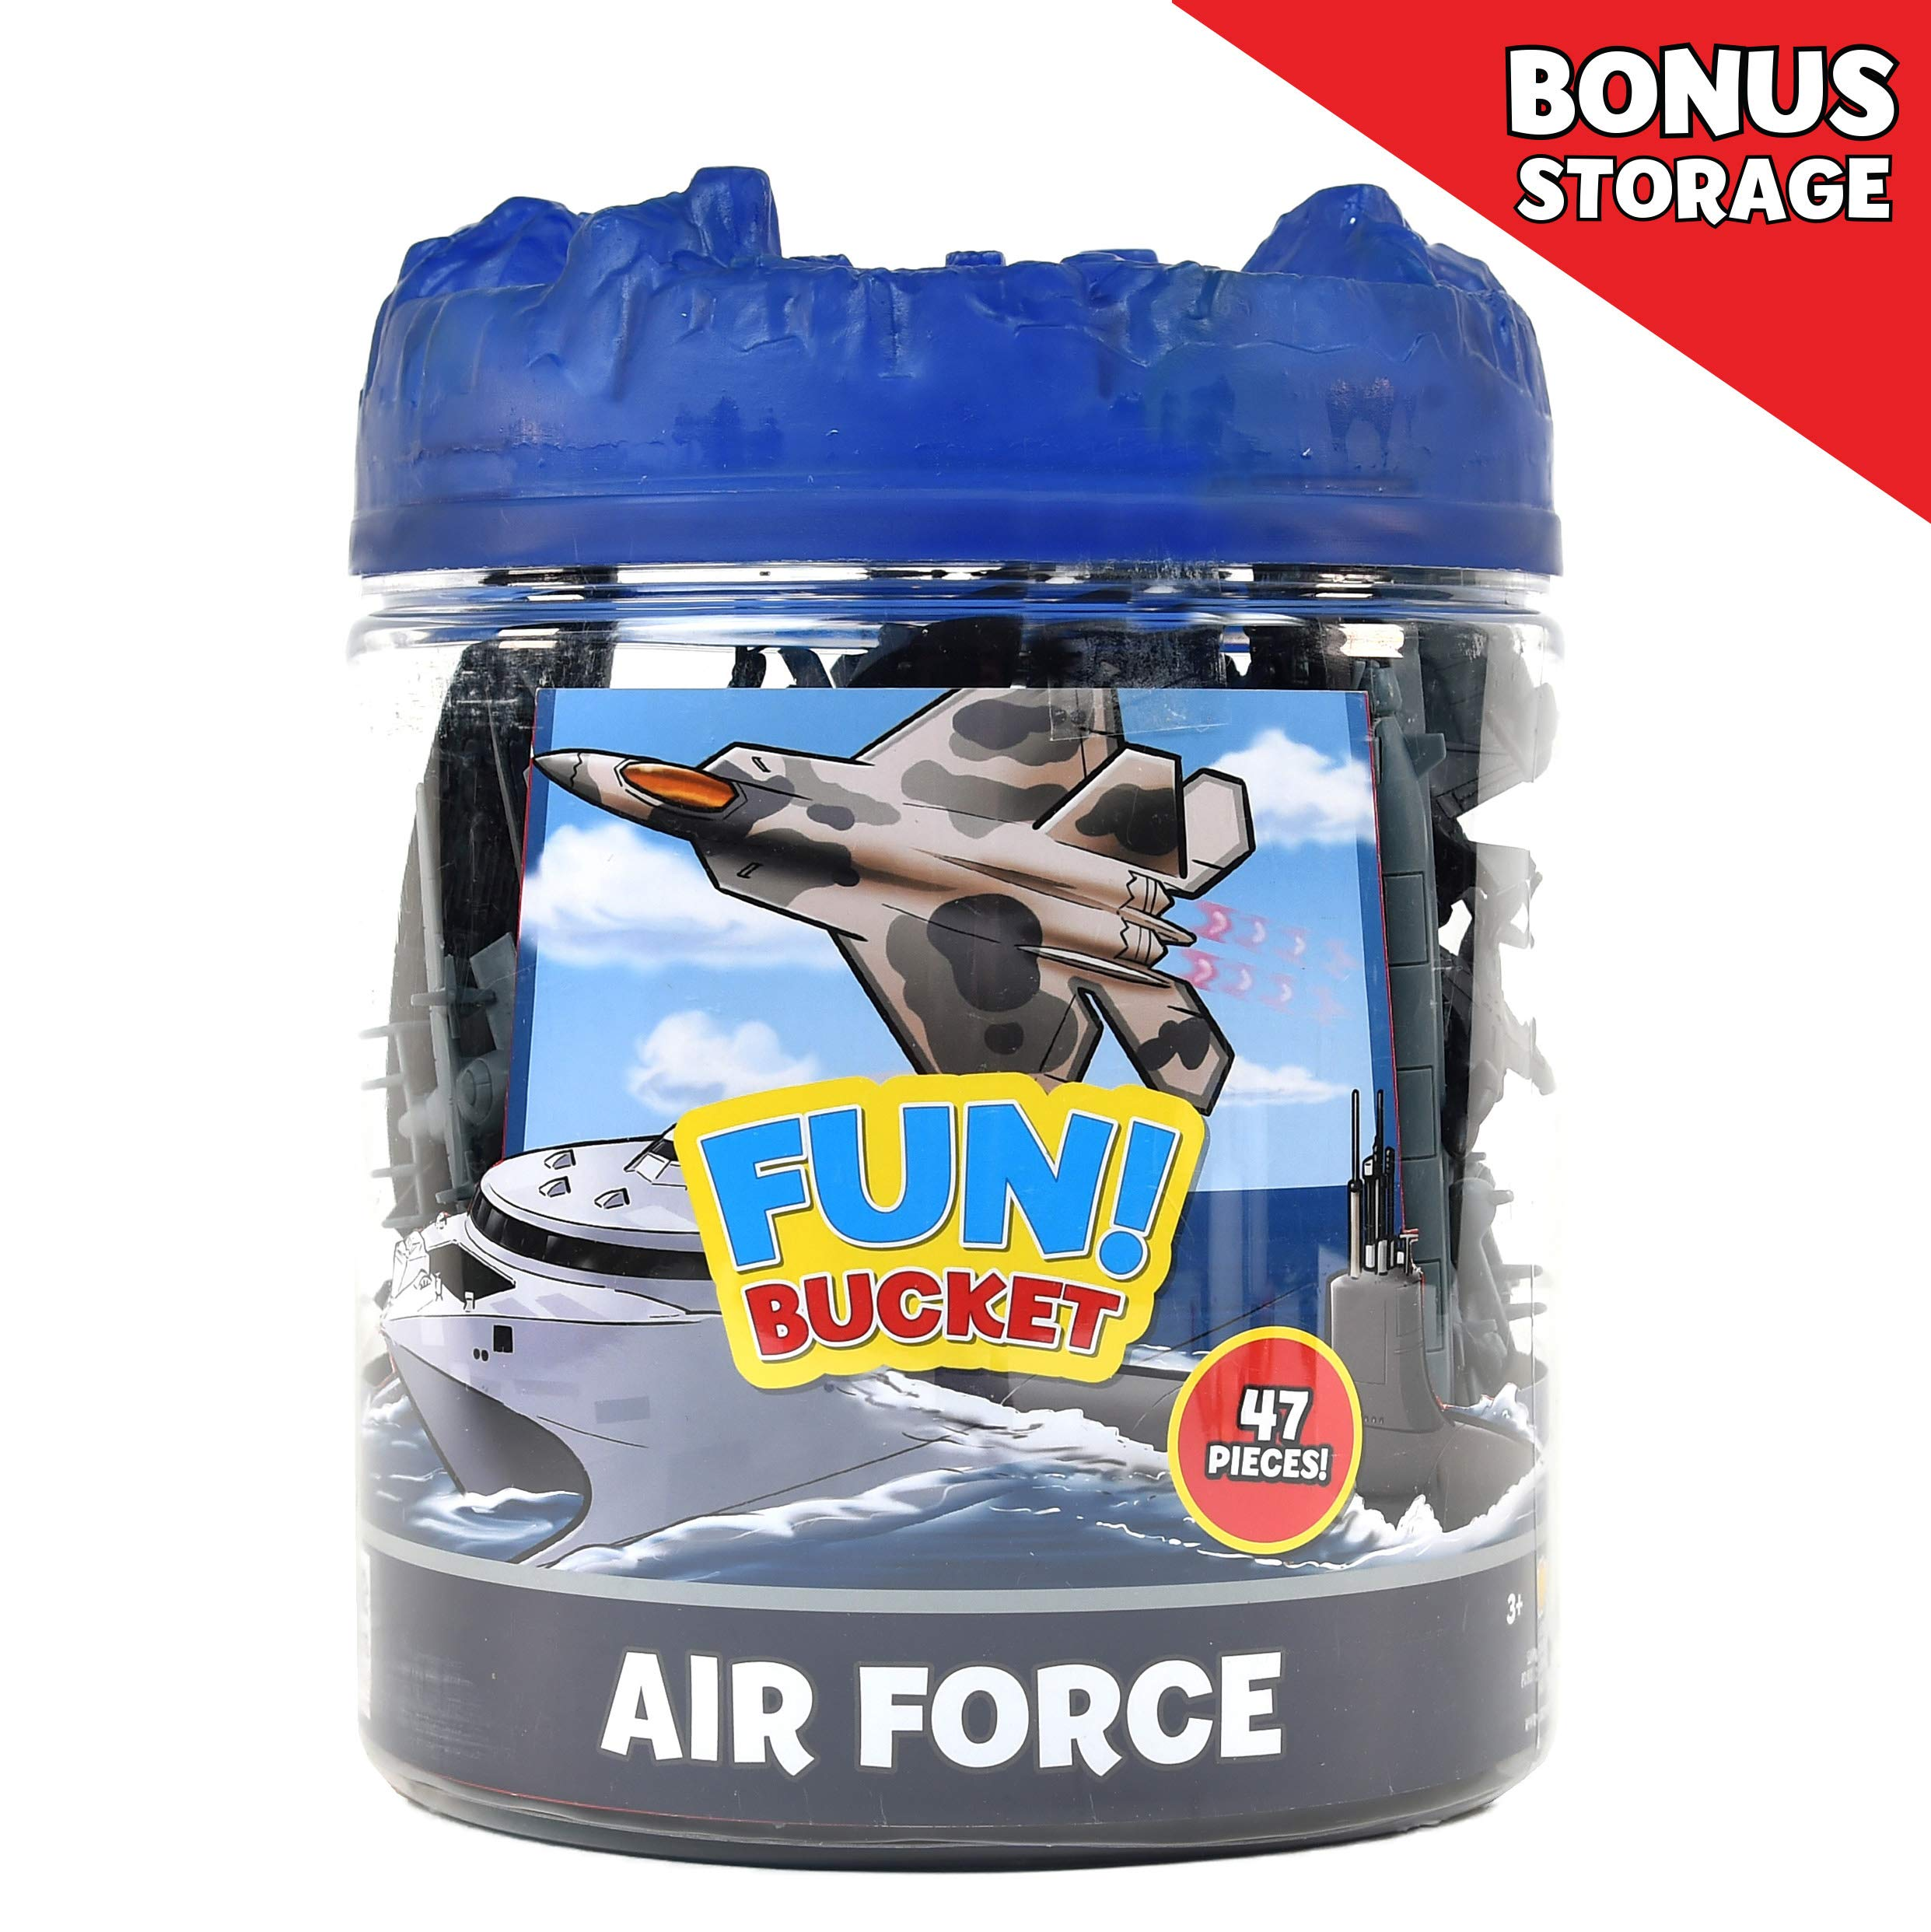 Sunny Days Entertainment Military Air Force Bucket – 47 Assorted Battleships and Accessories Toy Play Set for Kids, Boys and Girls | Plastic Boat and Plane Figures with Storage Container